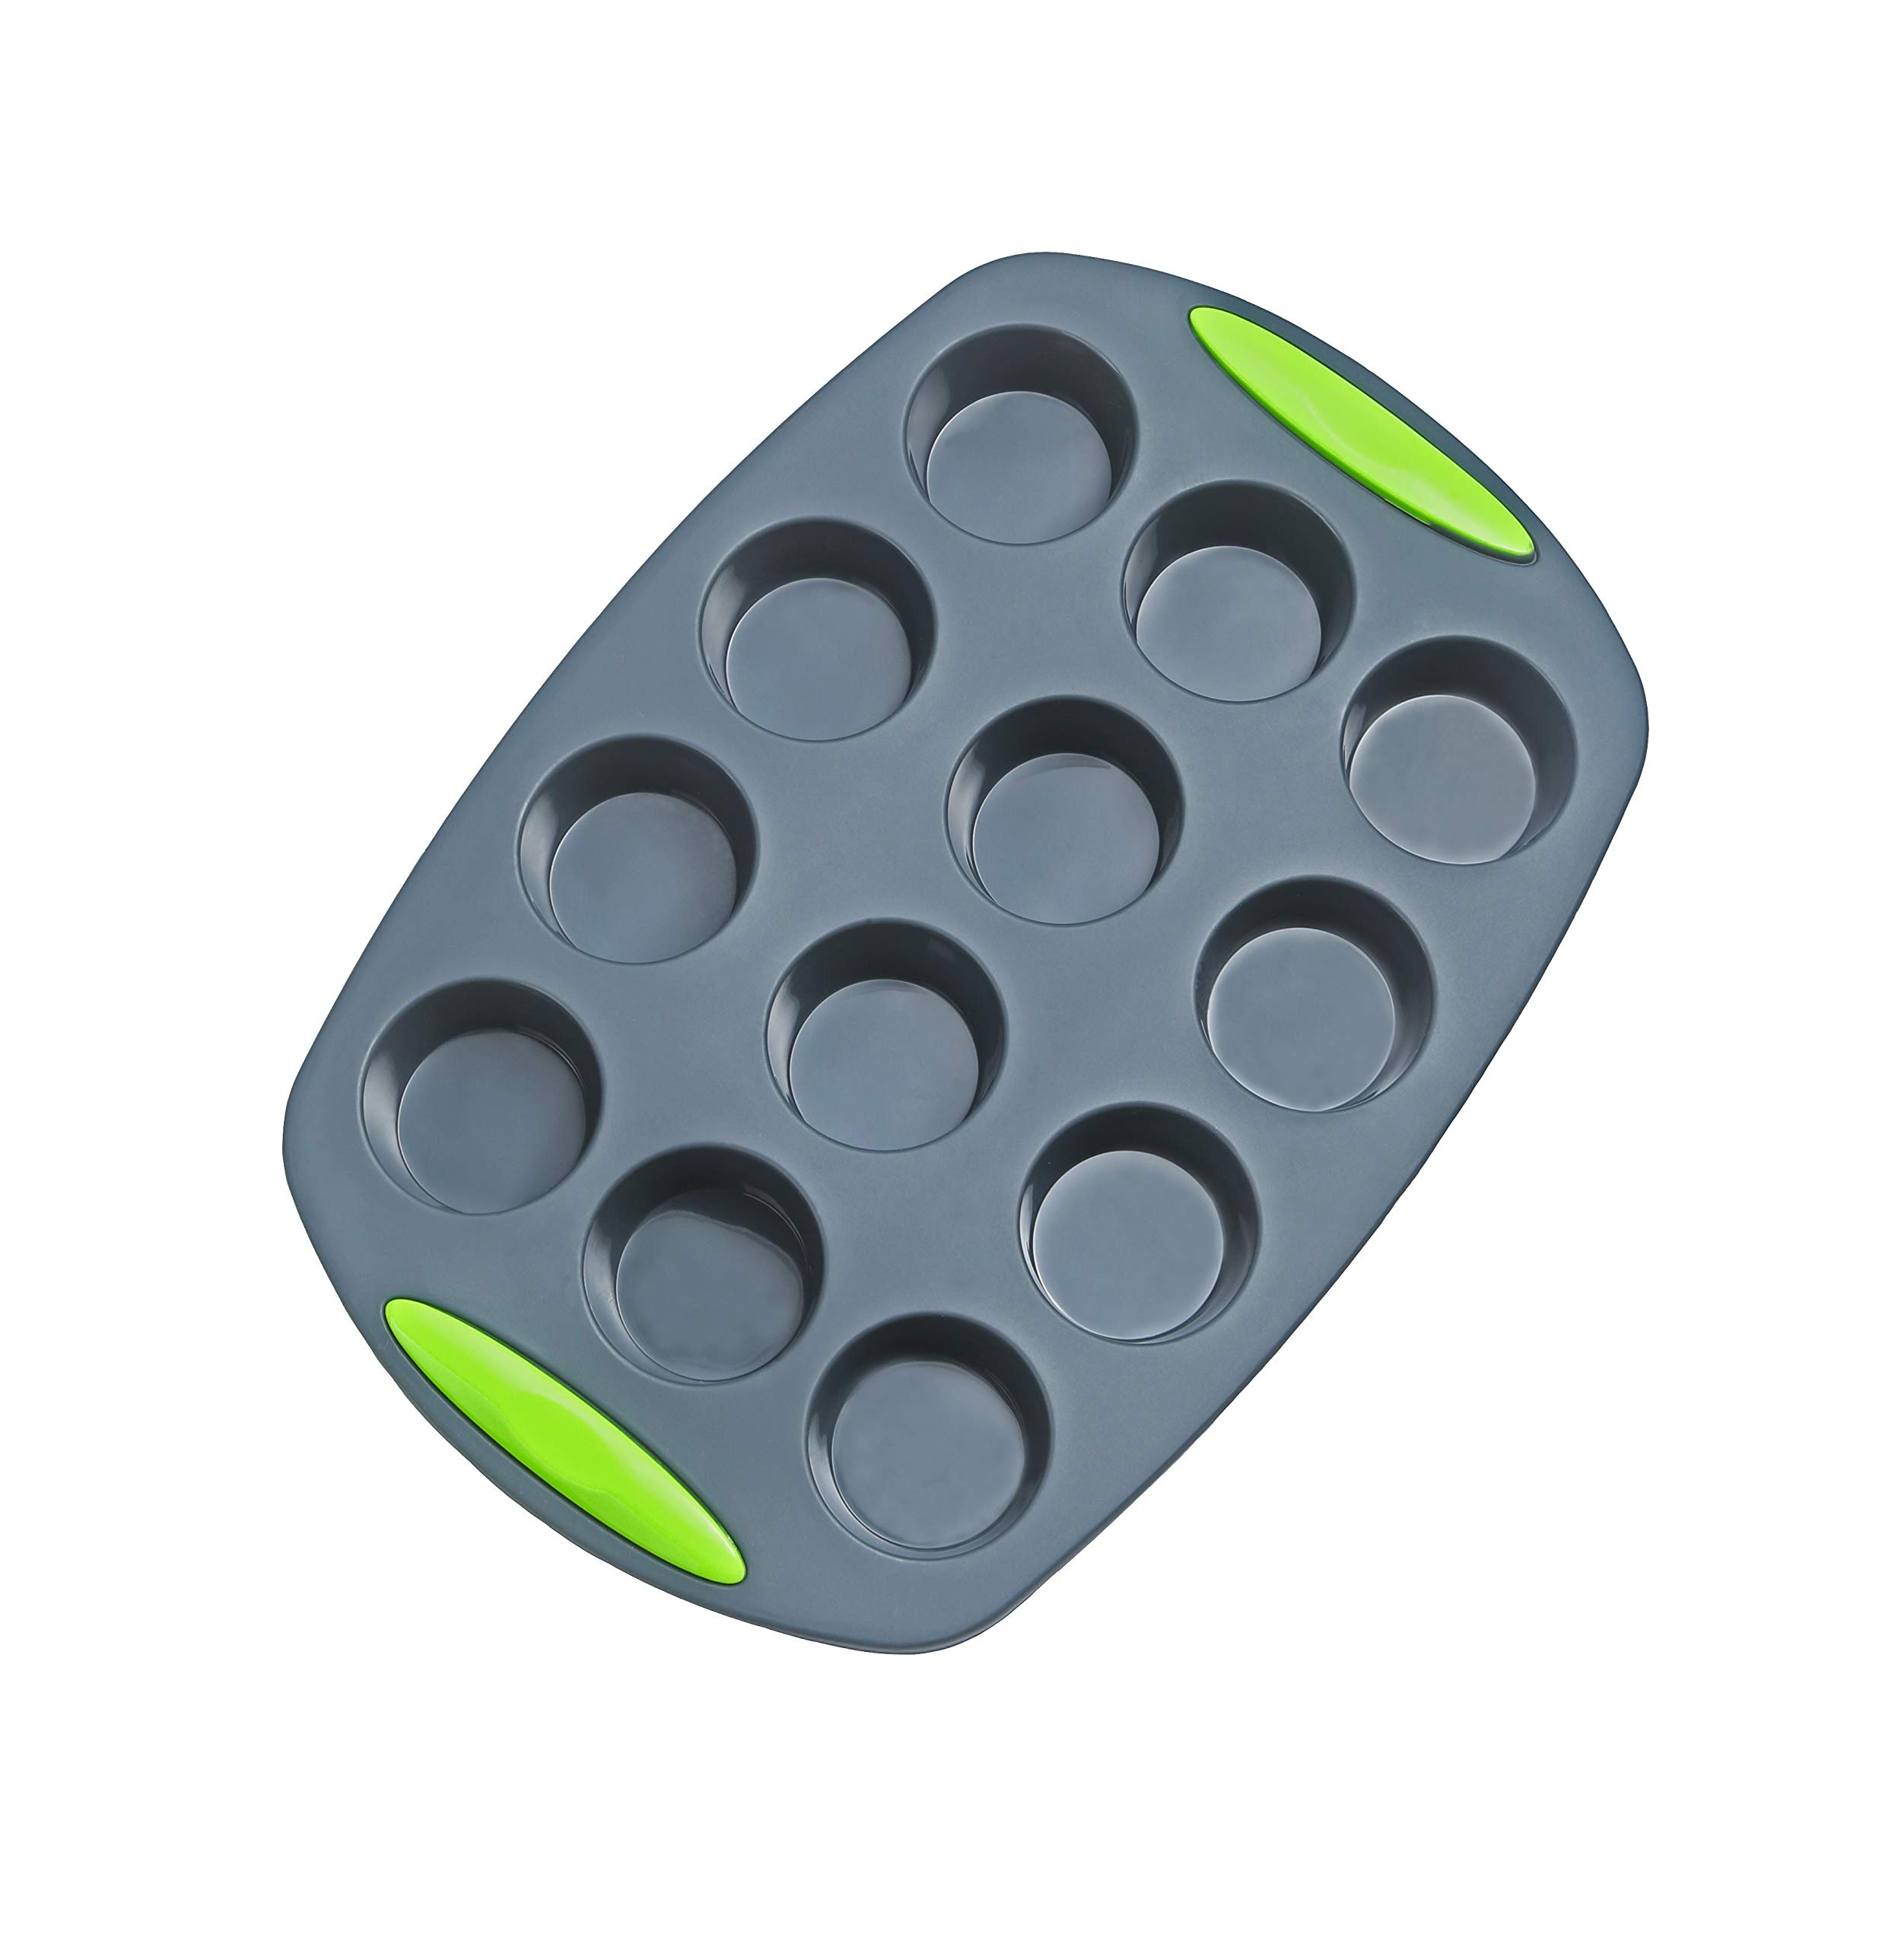 5 Pieces Silicone Bakeware Set | Food Grade FDA-Approved Silicone Molds | Round Cake Pan, Loaf Toast Bread Pan, 12 Cup Muffin Pan, 7-Cavity Donut Pan, 11x7.5-Inch Cake Tray - Baking Pans Nonstick Set by megrocle (Image #8)